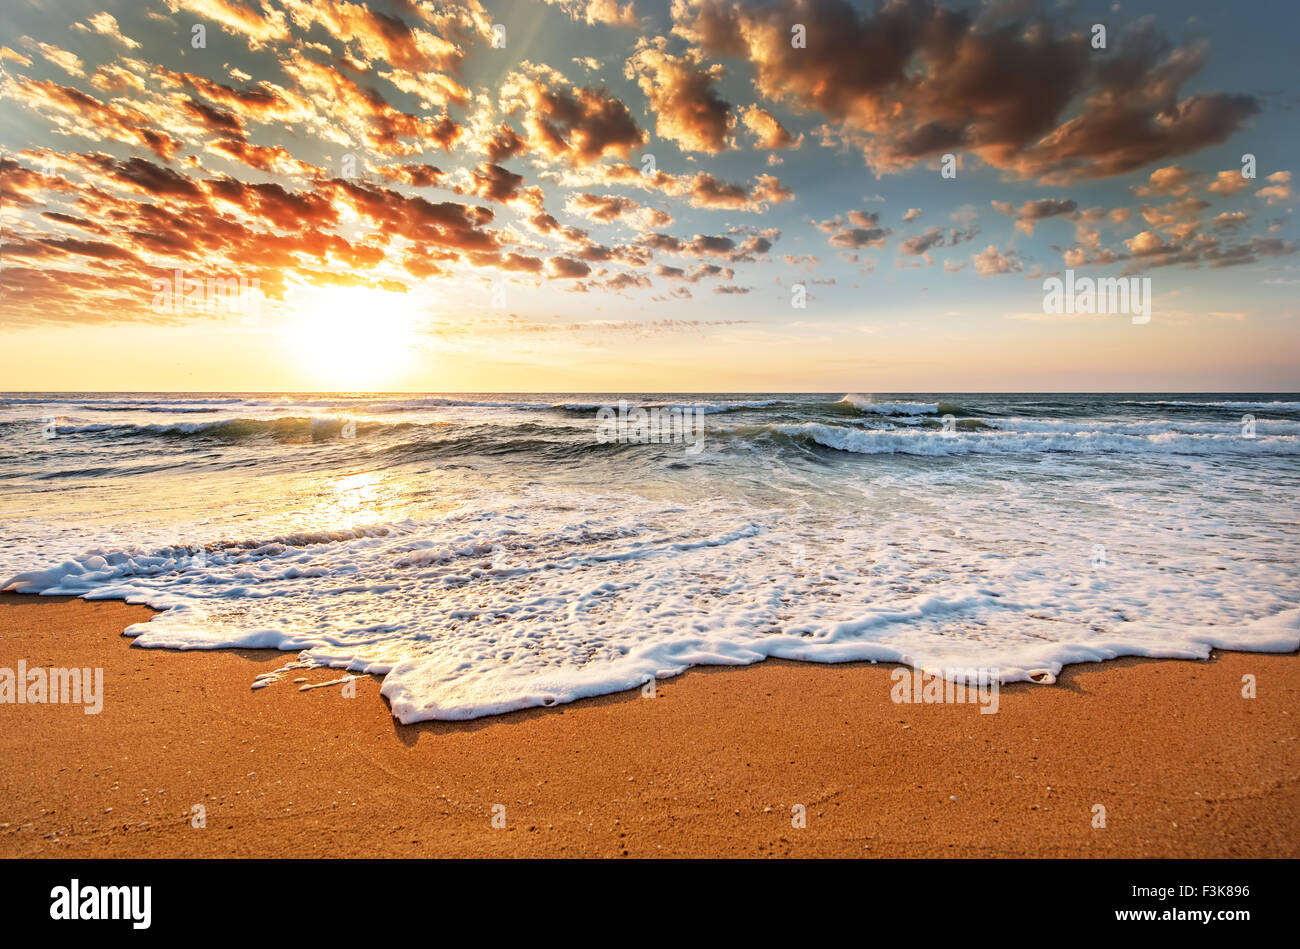 Brilliant ocean beach sunrise. - Stock Image